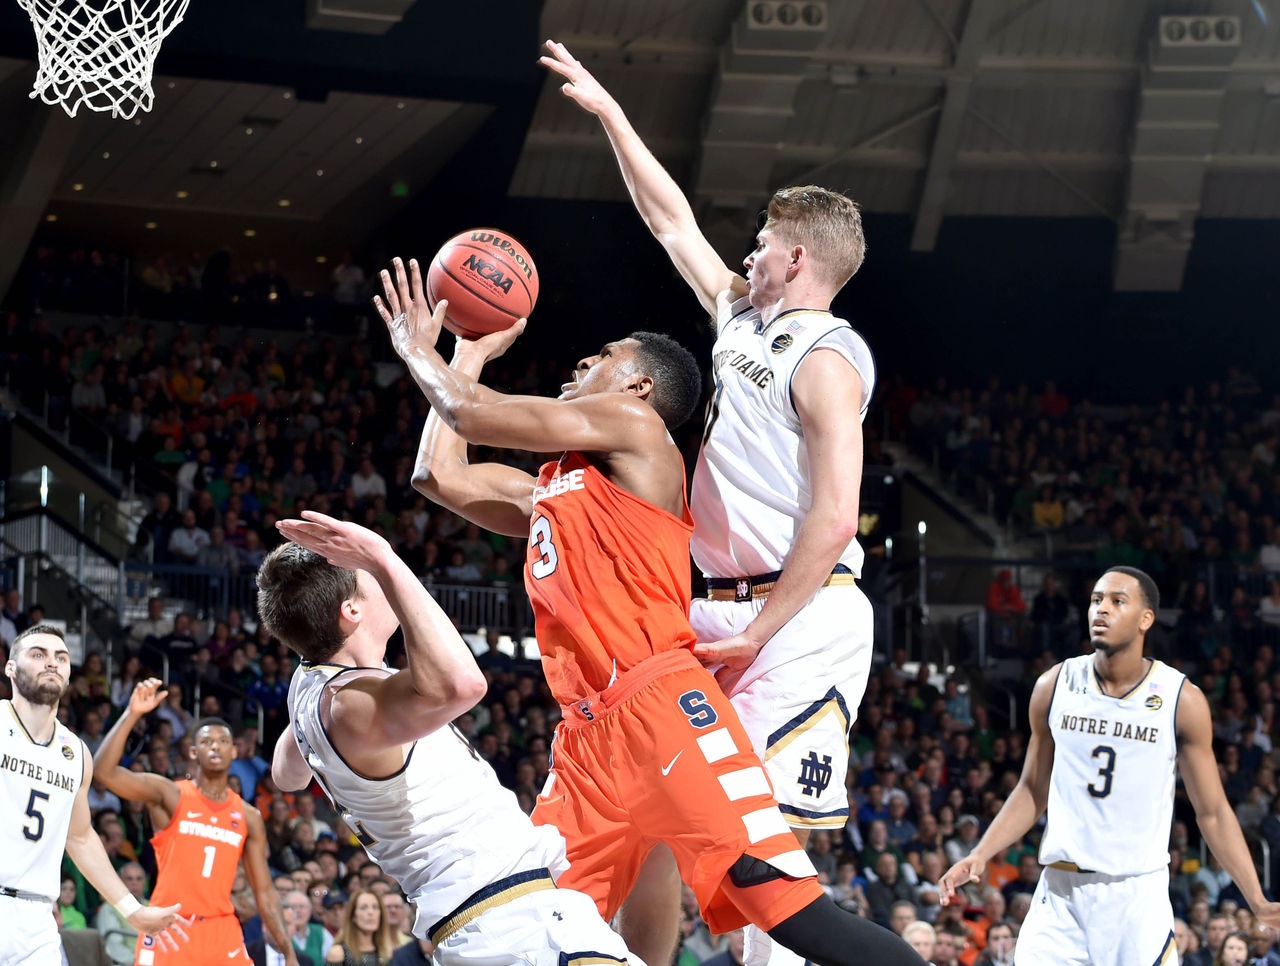 Cropped 2017 01 21t174311z 306539068 nocid rtrmadp 3 ncaa basketball syracuse at notre dame